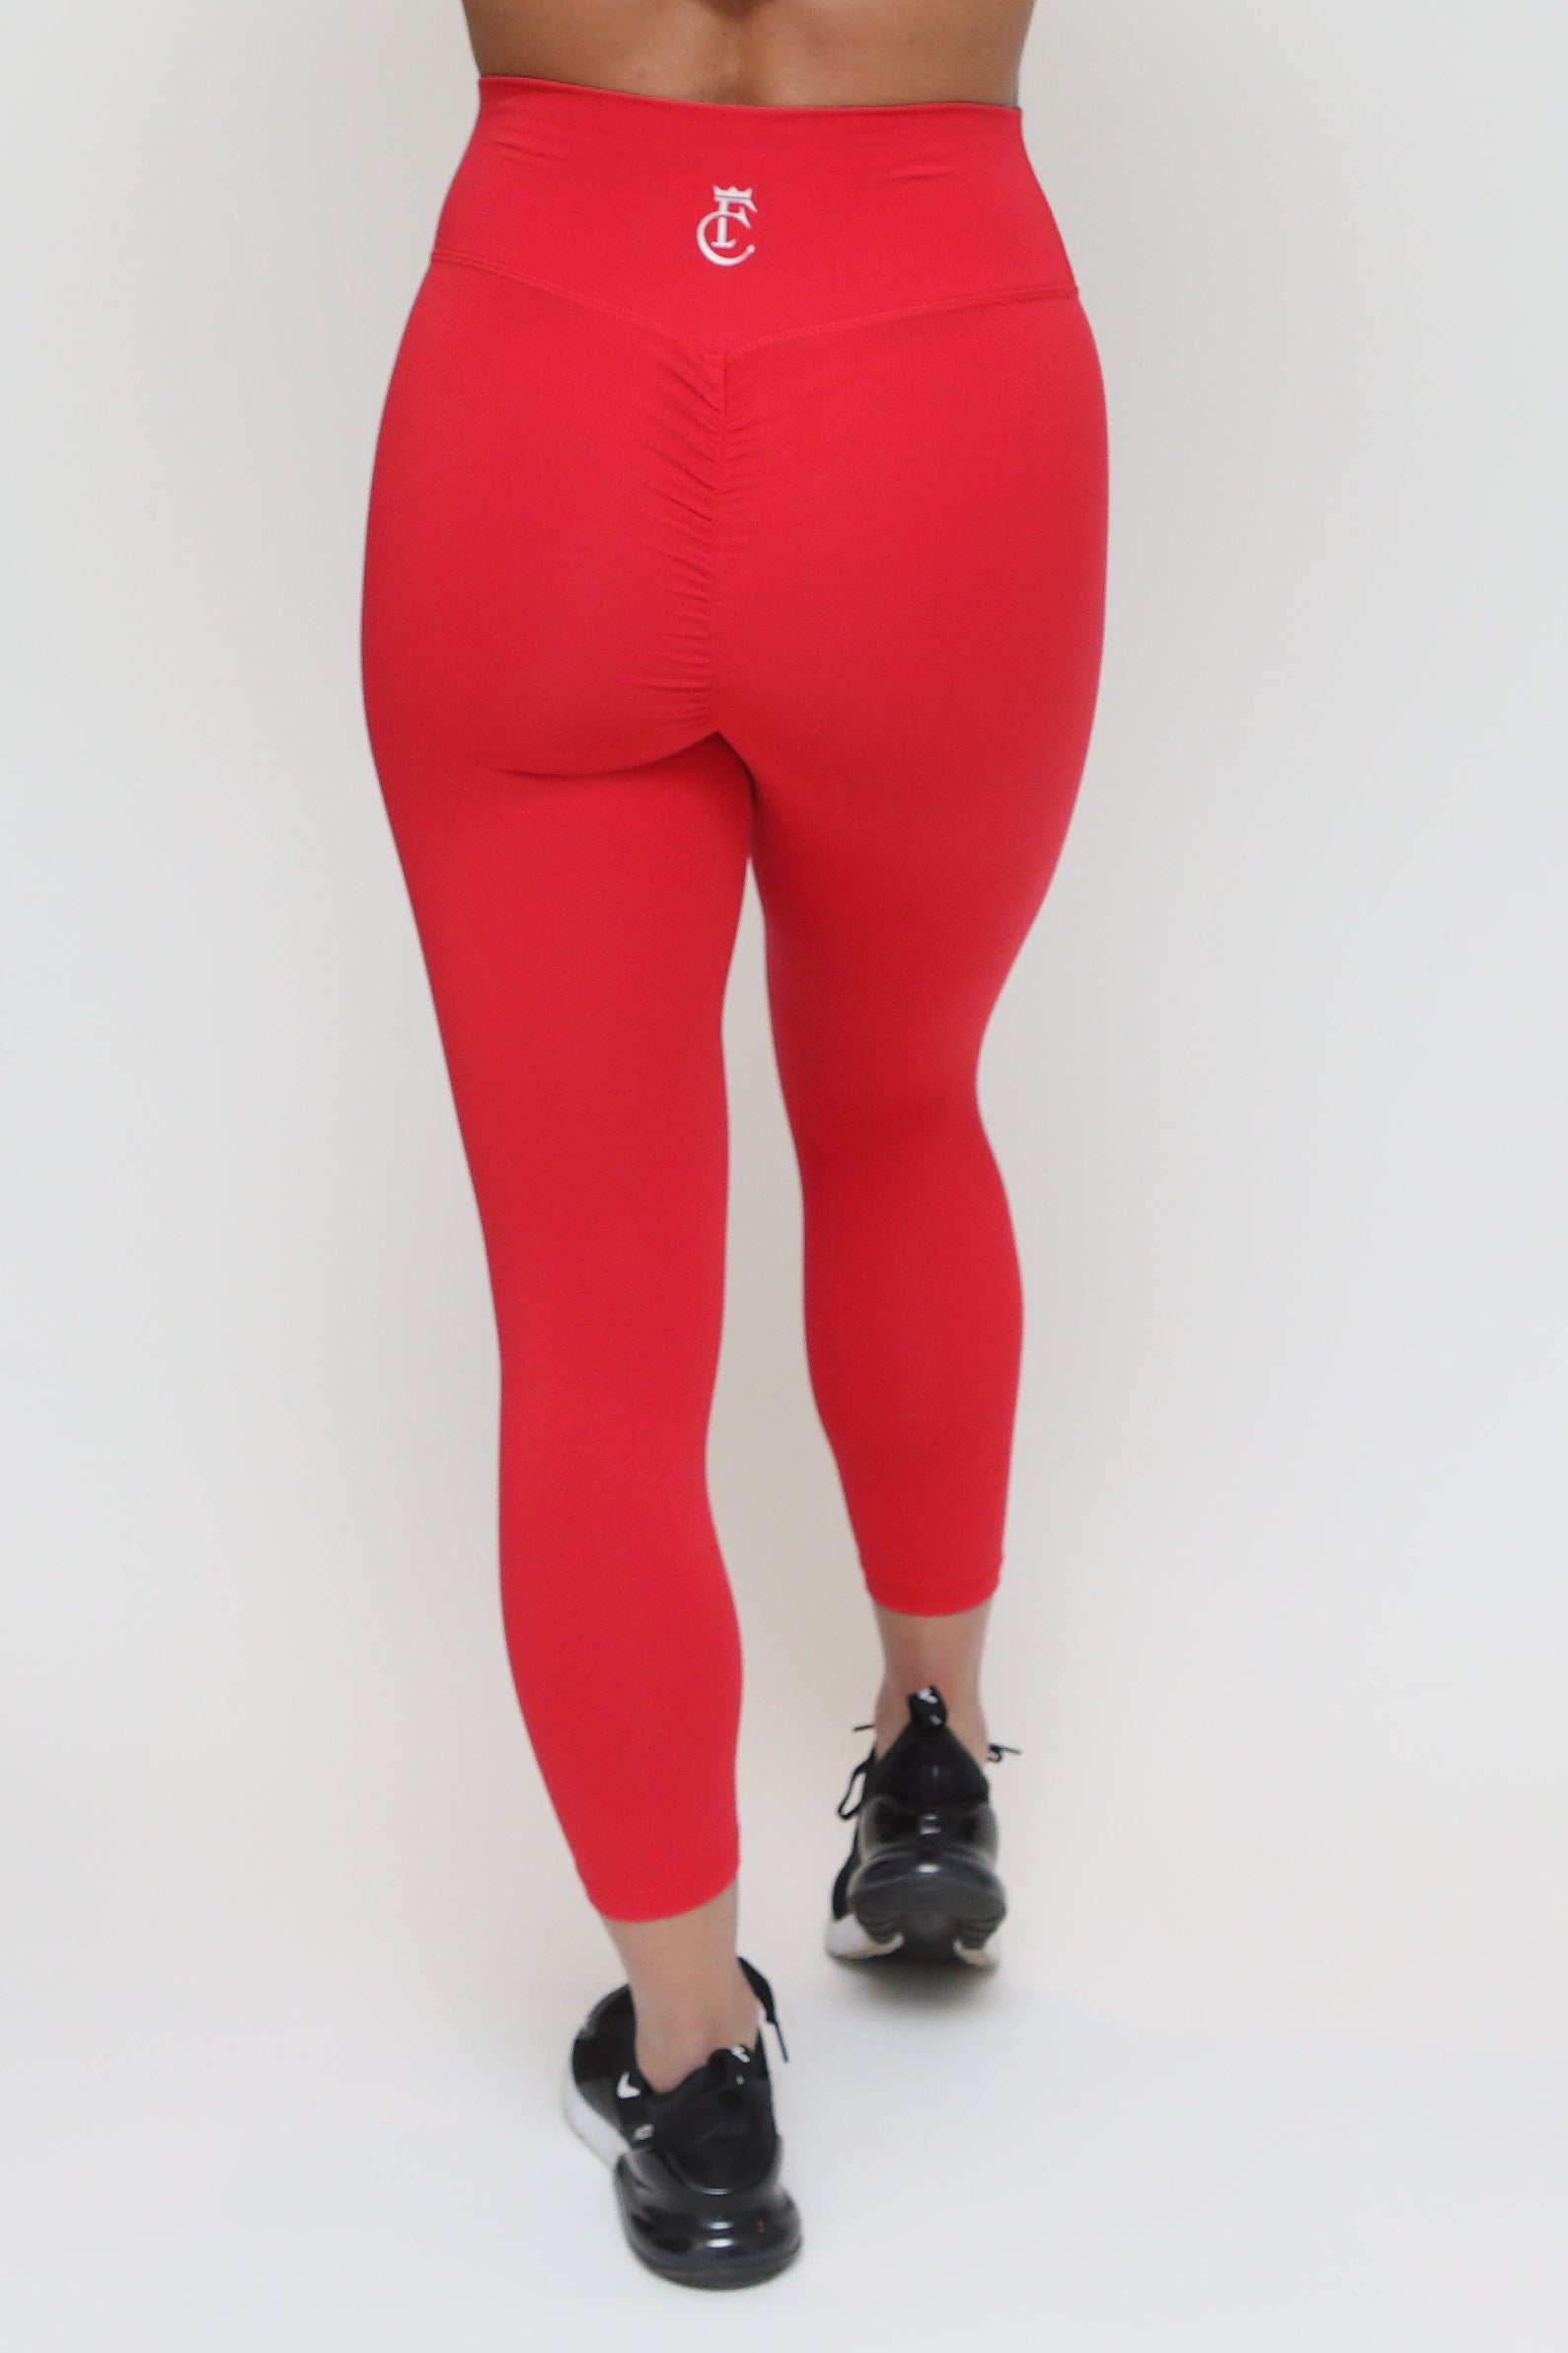 7/8 Scrunch Tights - Red